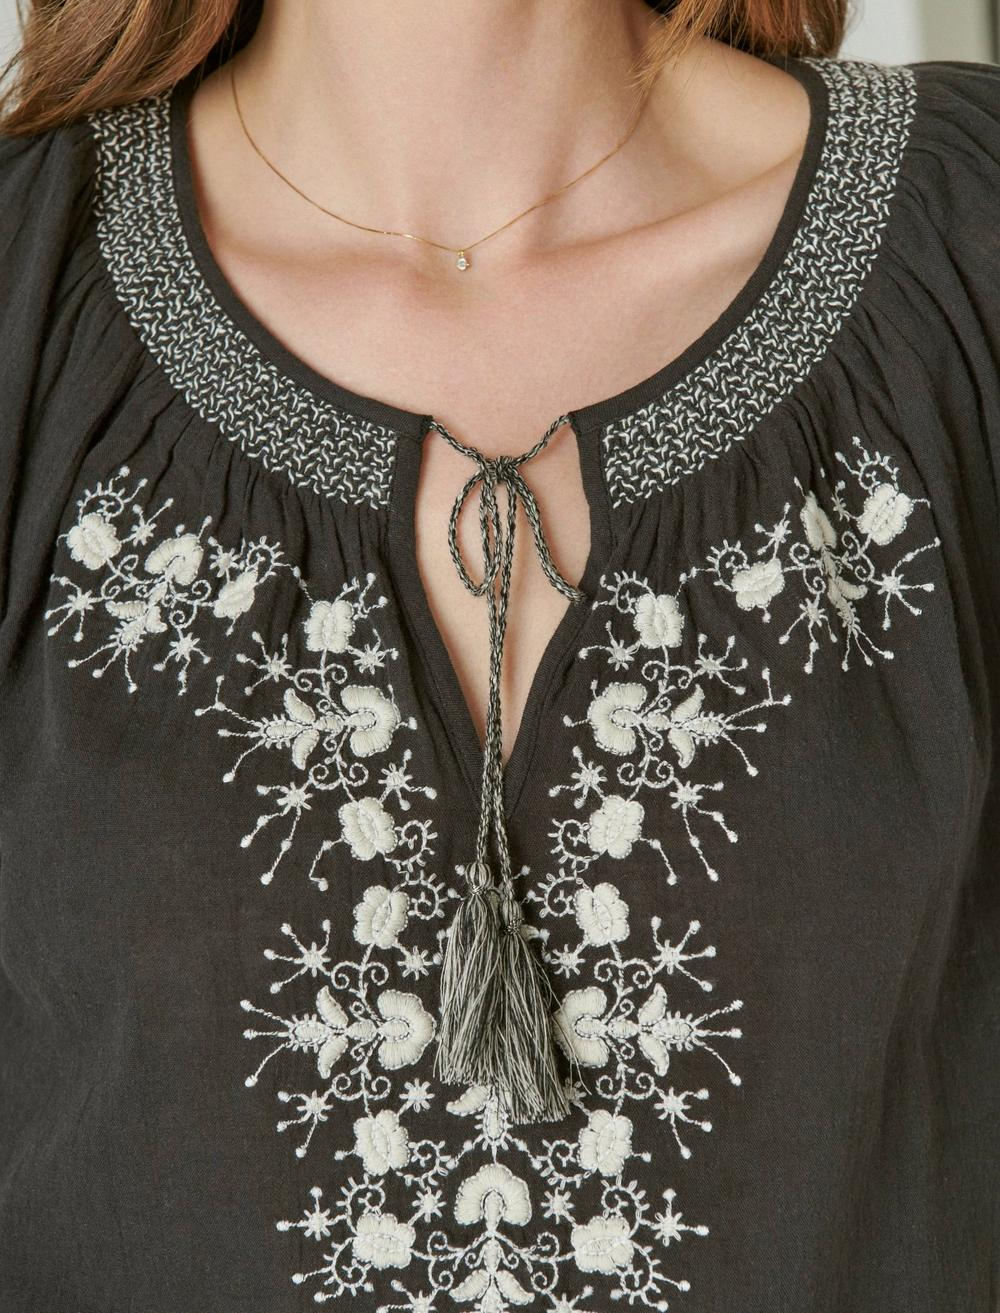 EMBROIDERED SHORT SLEEVE TOP, image 6